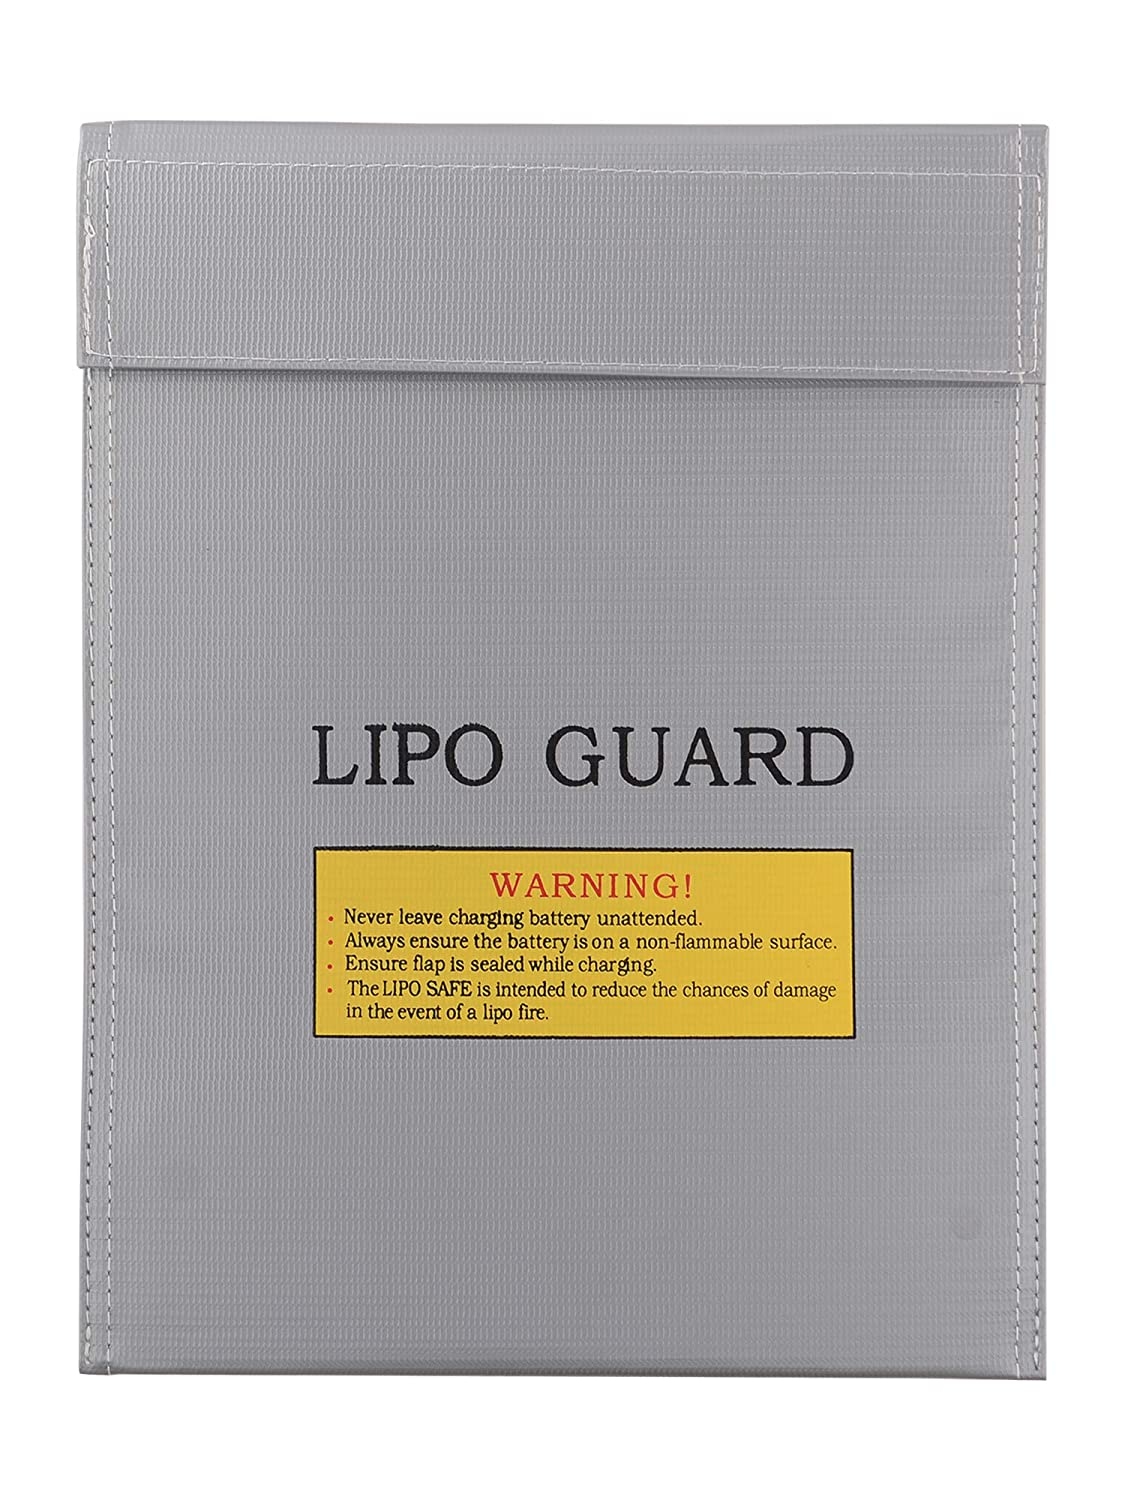 Silver Fire Resistant Flame-Resistant Fireproof Explosion-Proof Waterproof Lipo Battery Storage Guard Pouch Sleeve Safety Protective Bag for Safe Charge /& Storage 12 x 9 Inches Large Size